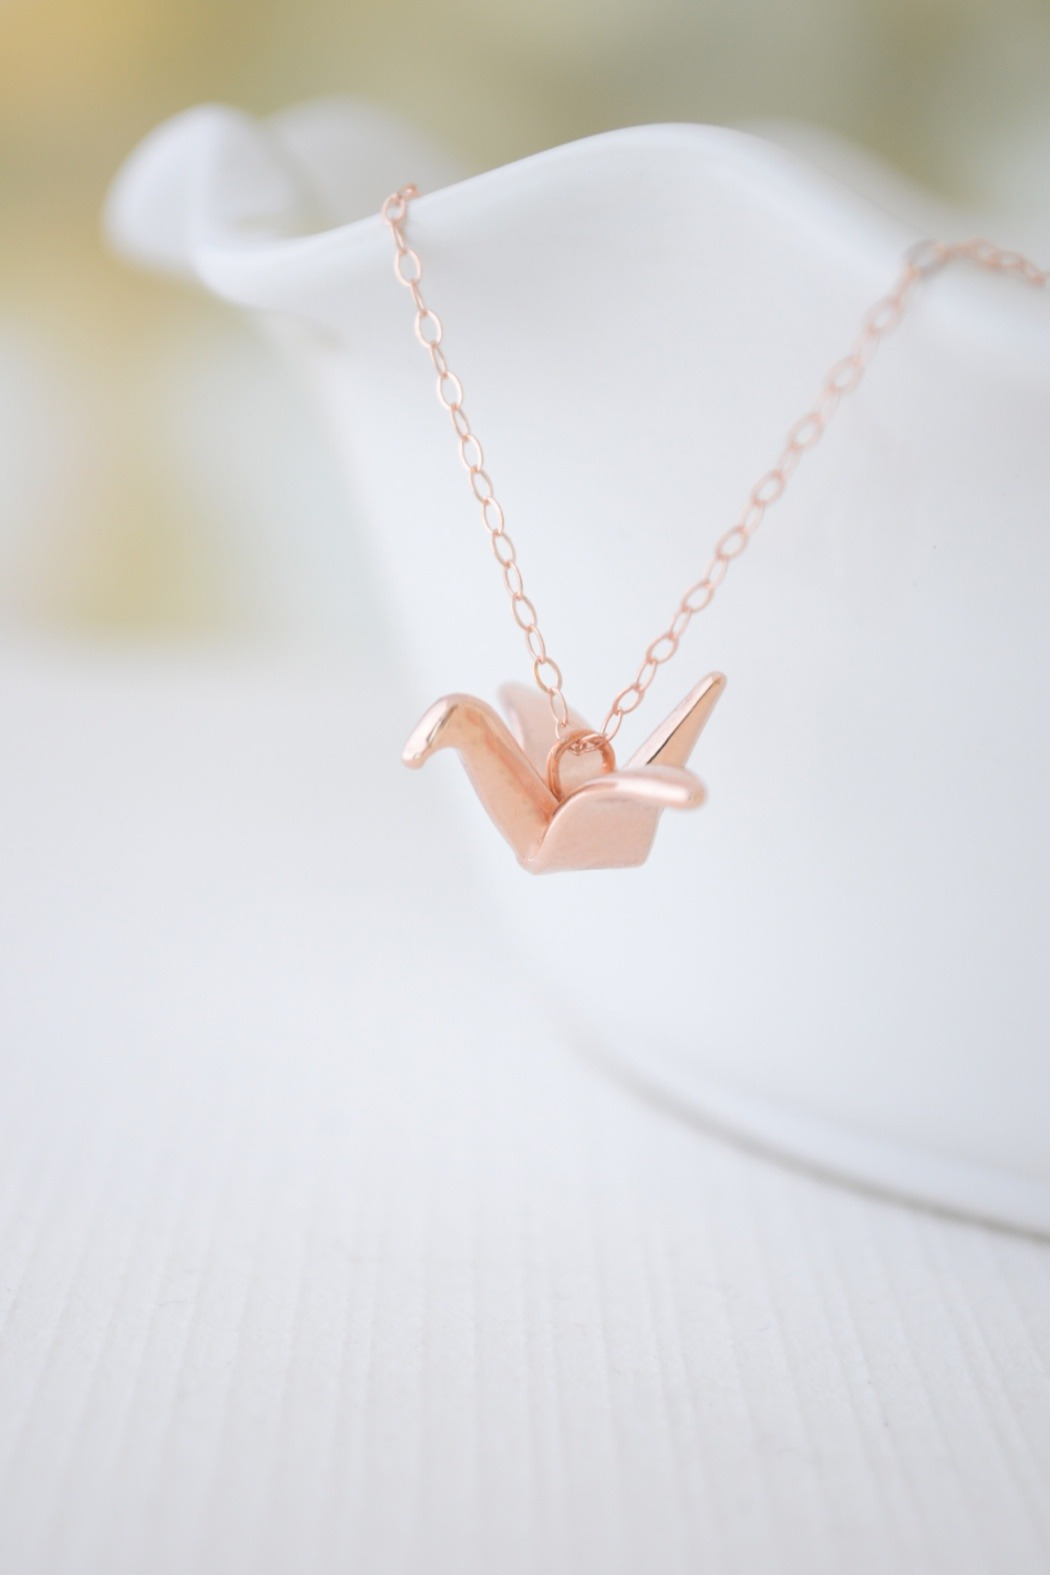 Olive Yew Origami Crane Necklace from North Carolina ... - photo#16